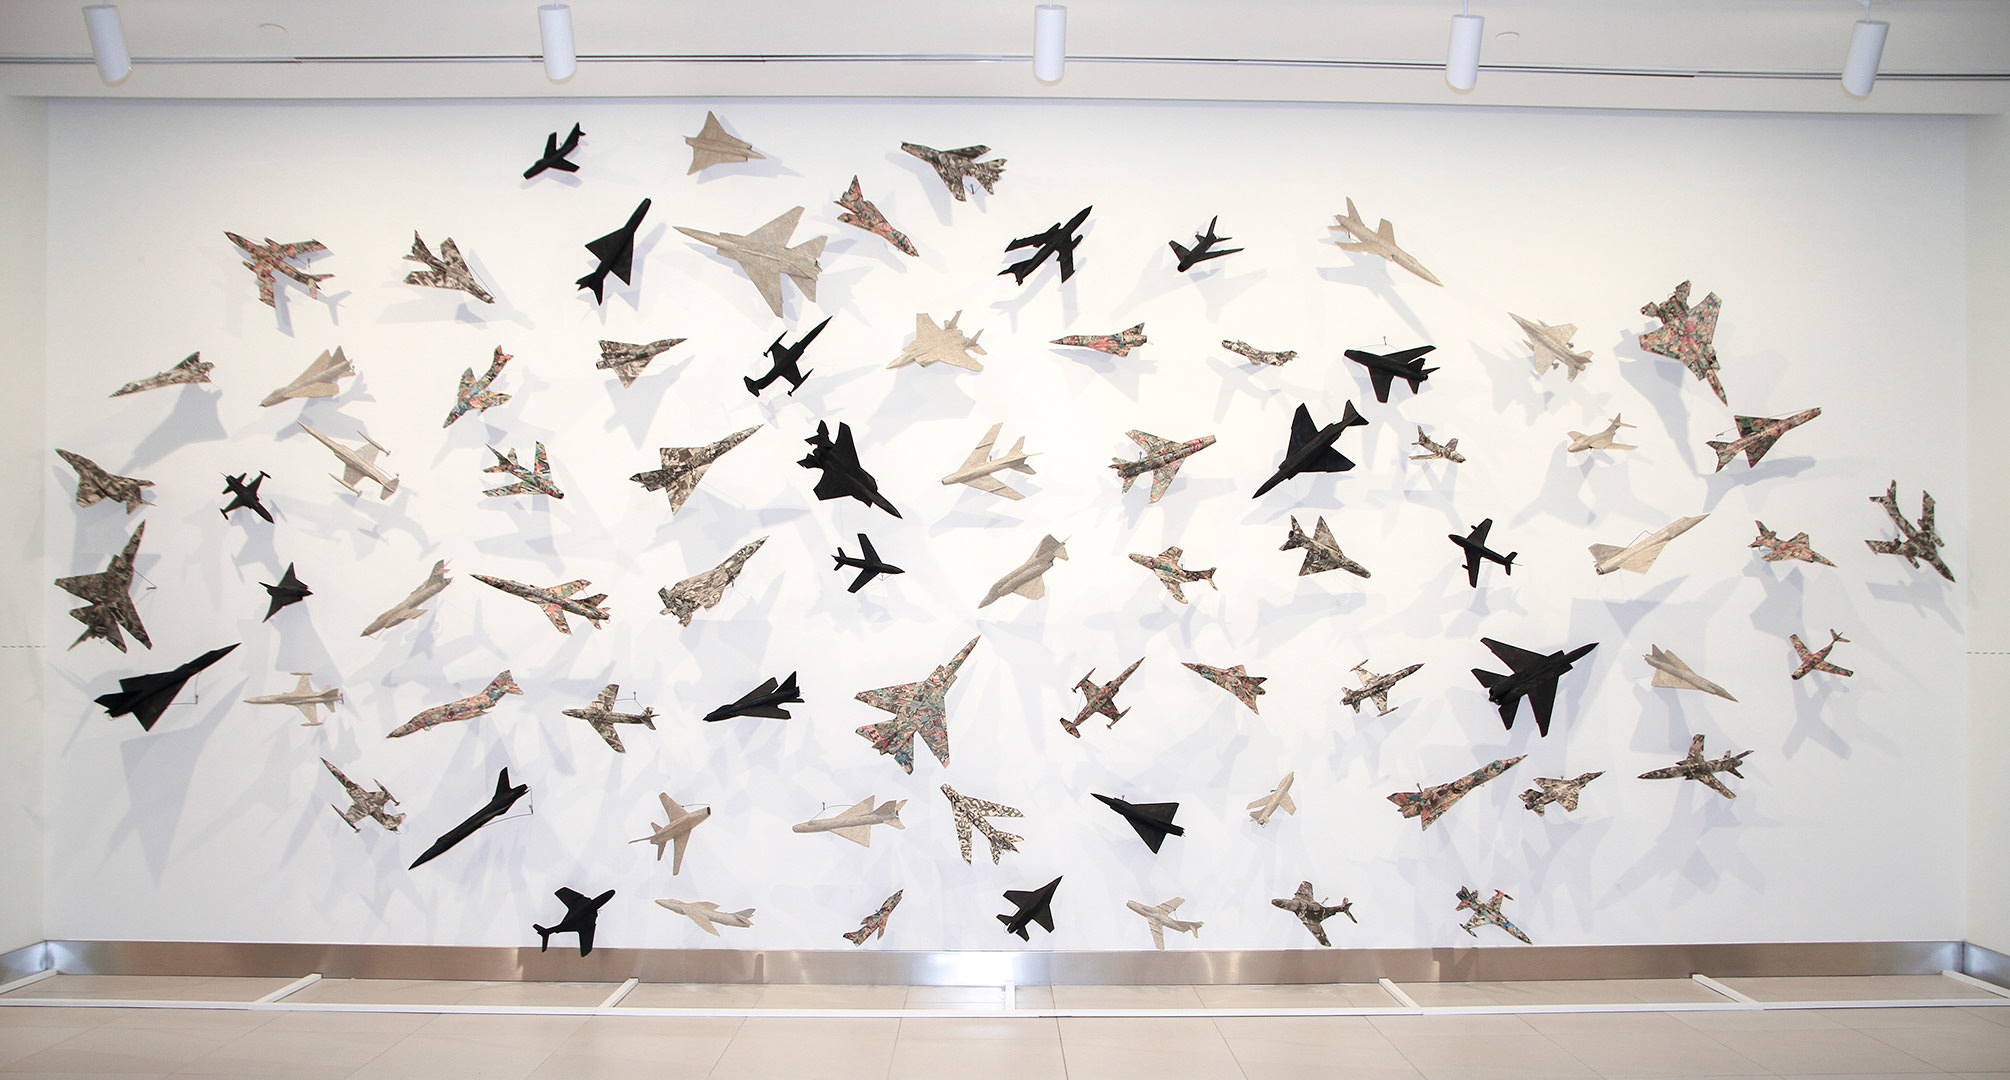 76 Airplanes (1985) Robert Adrian (1935 - 2015) Installation: collage sur avions modelés Collection : Banque d'art du Conseil des arts du Canada